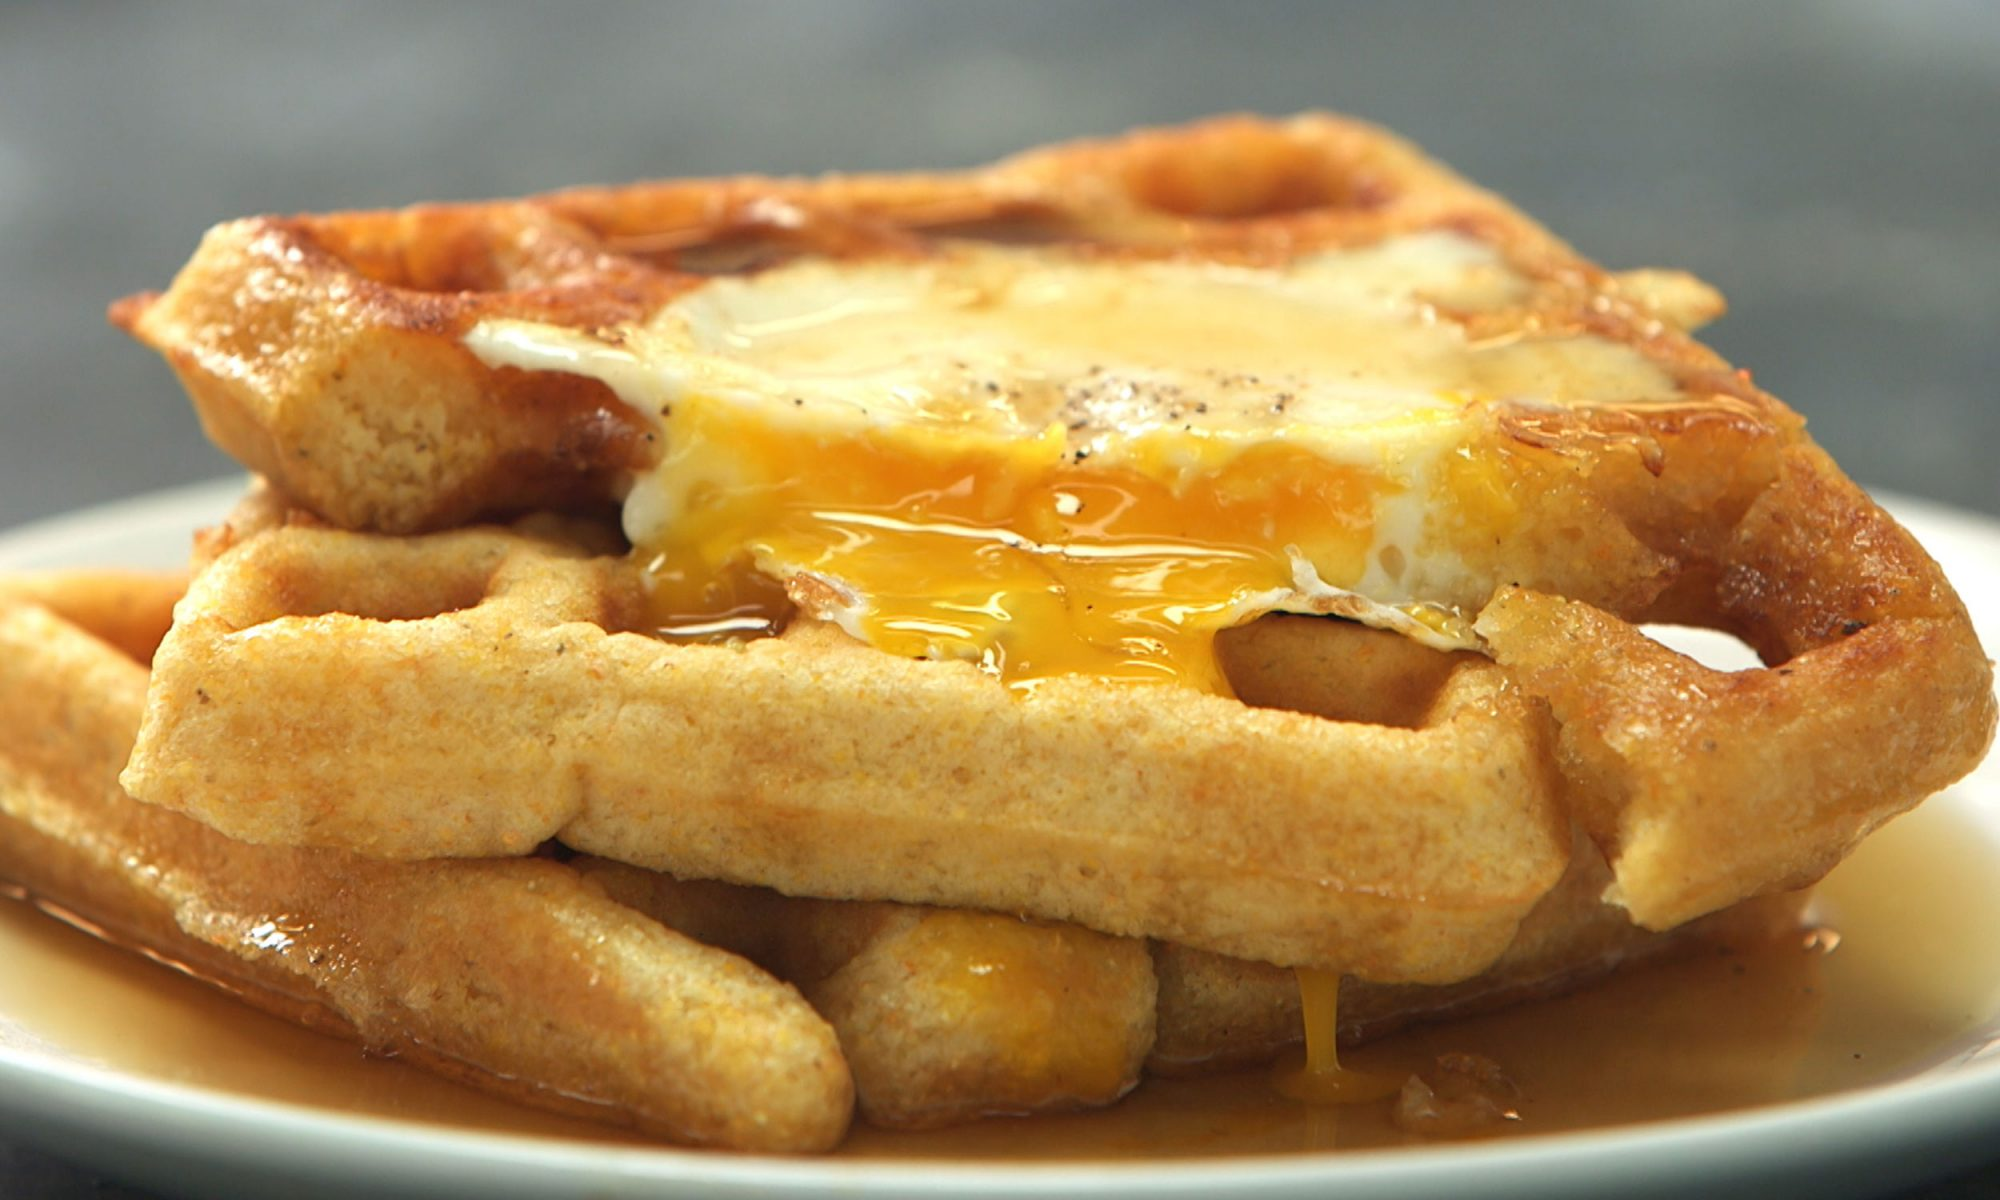 Egg in a Waffle Hole Is What Breakfast Dreams Are Made Of